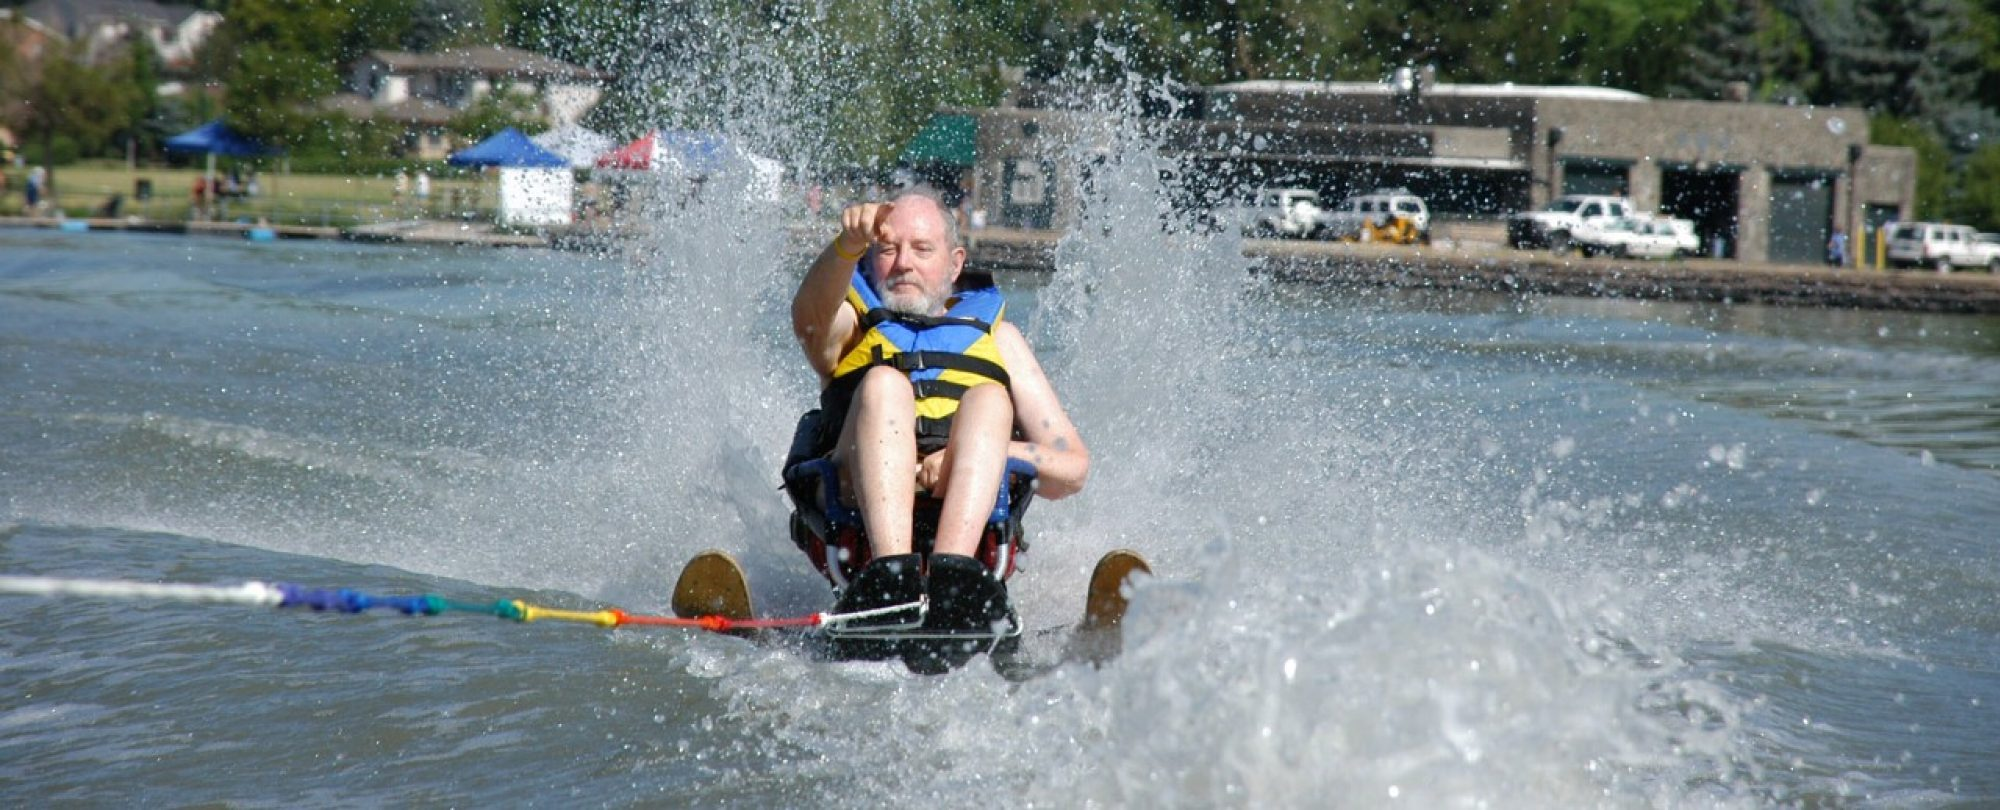 programs, trips and activities for people of all ages and abilities